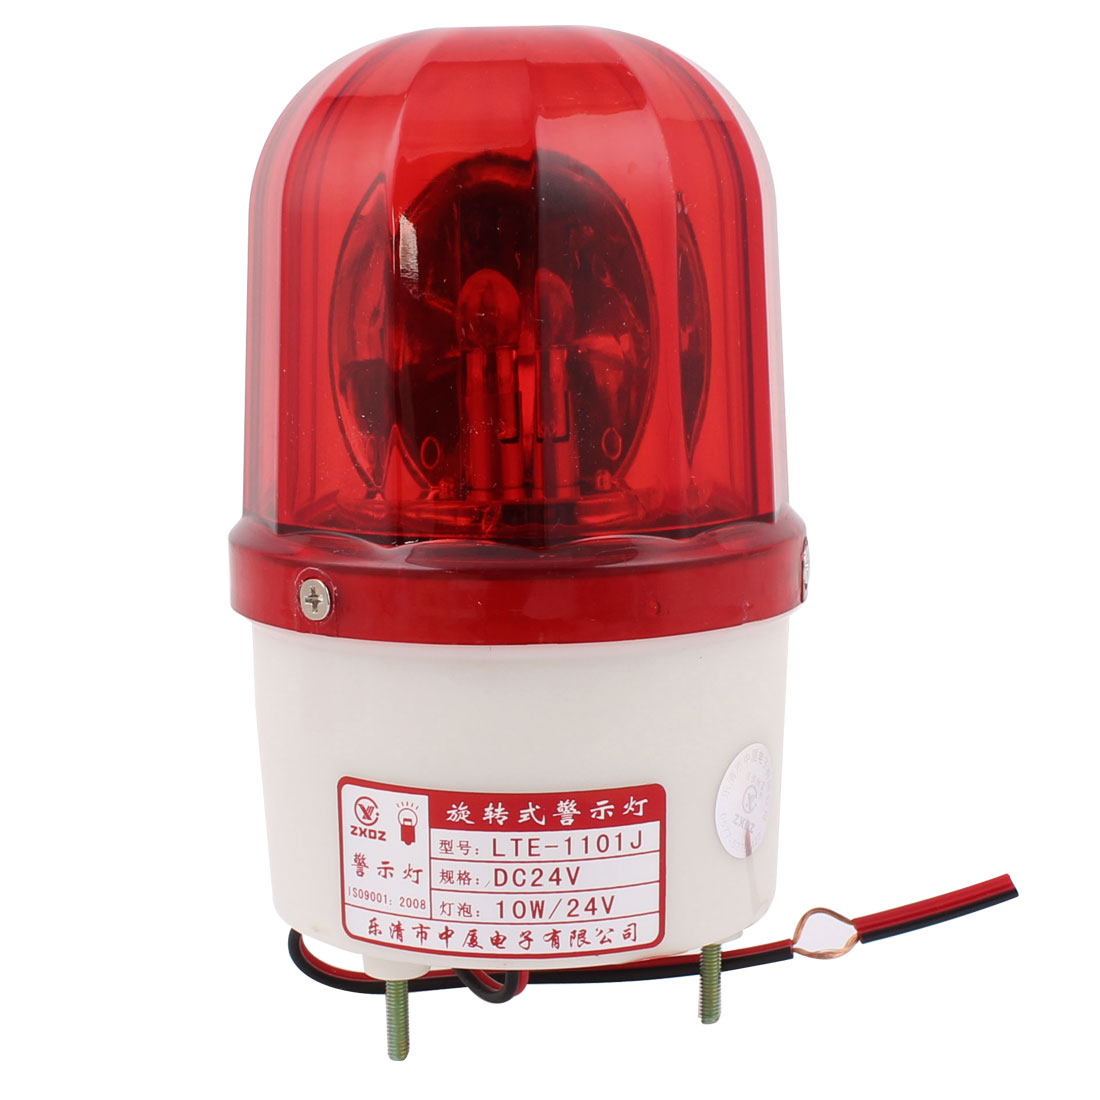 DC 24V 10W Industrial Red Rotary Flash Light Warning Signal Lamp Alarm Buzzer